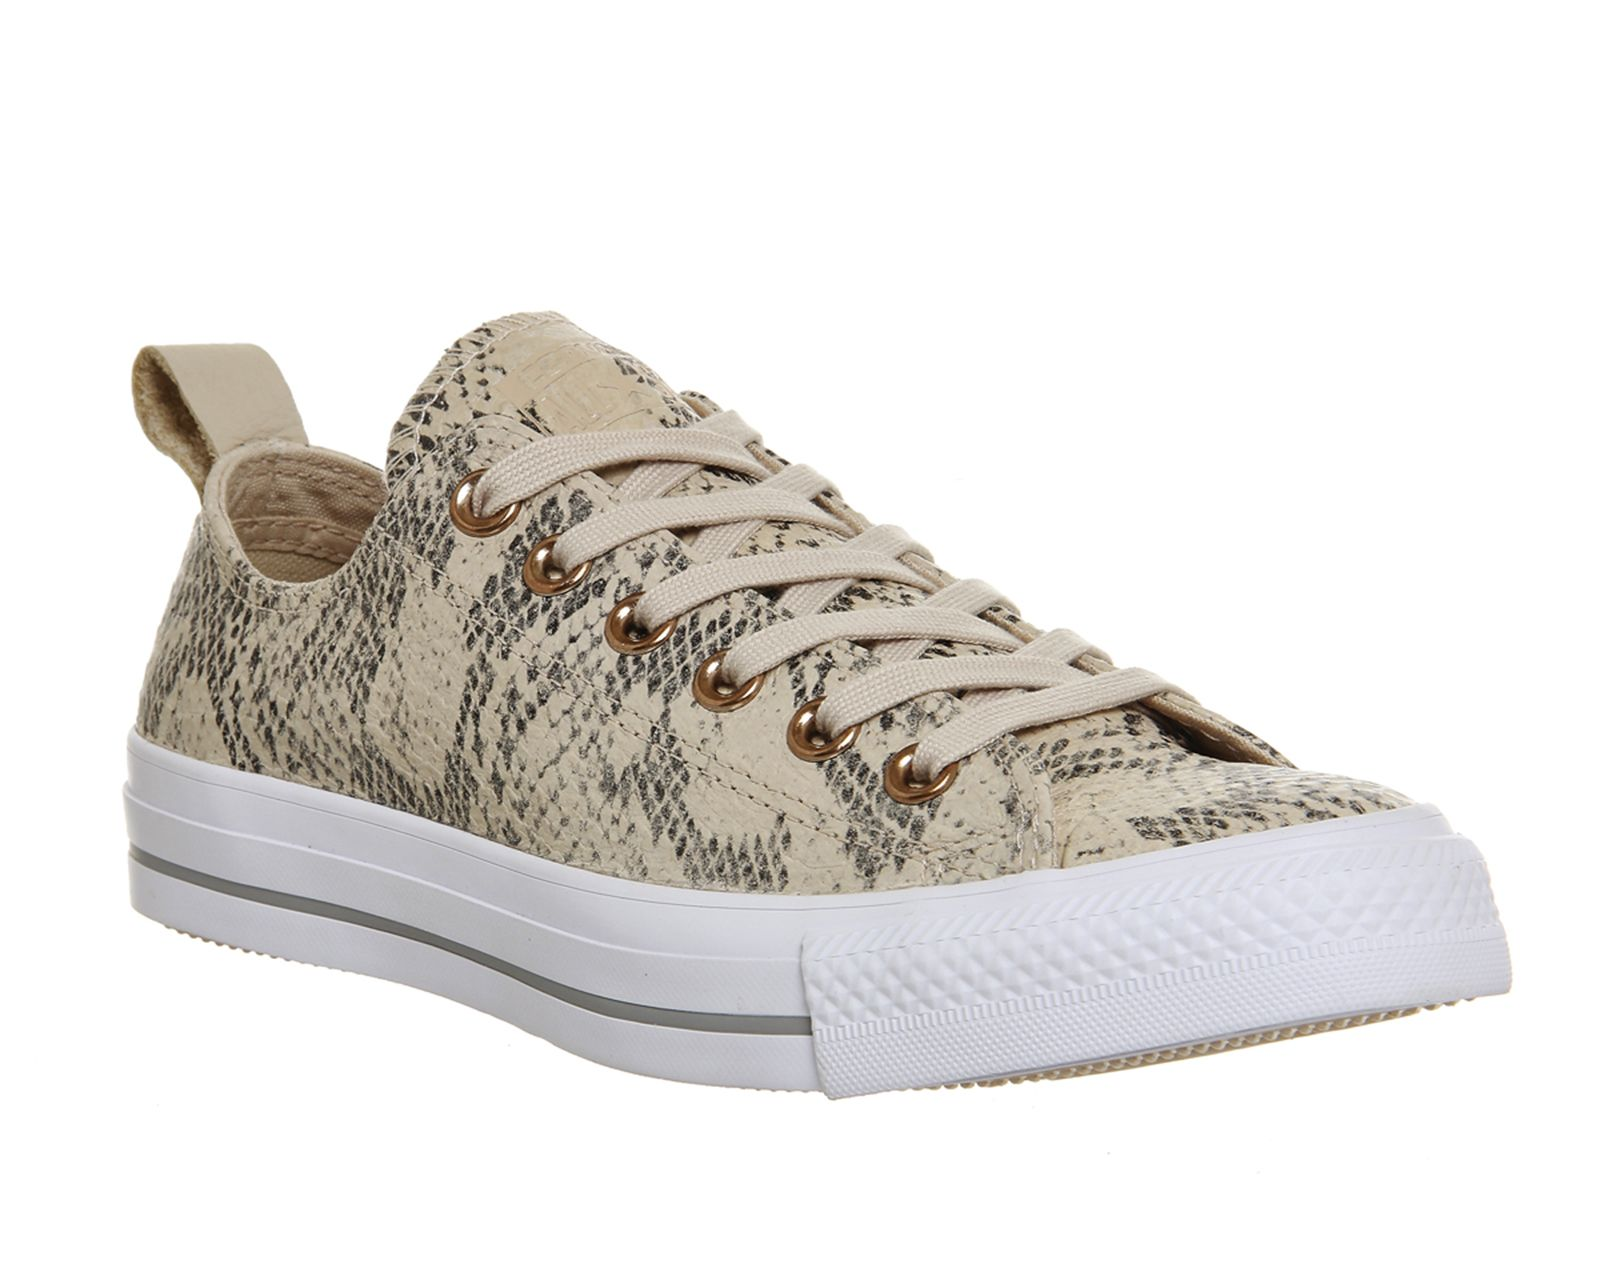 Converse Ctas Lined Loop Ox Ivory Snake Leather Exclusive Hers Trainers